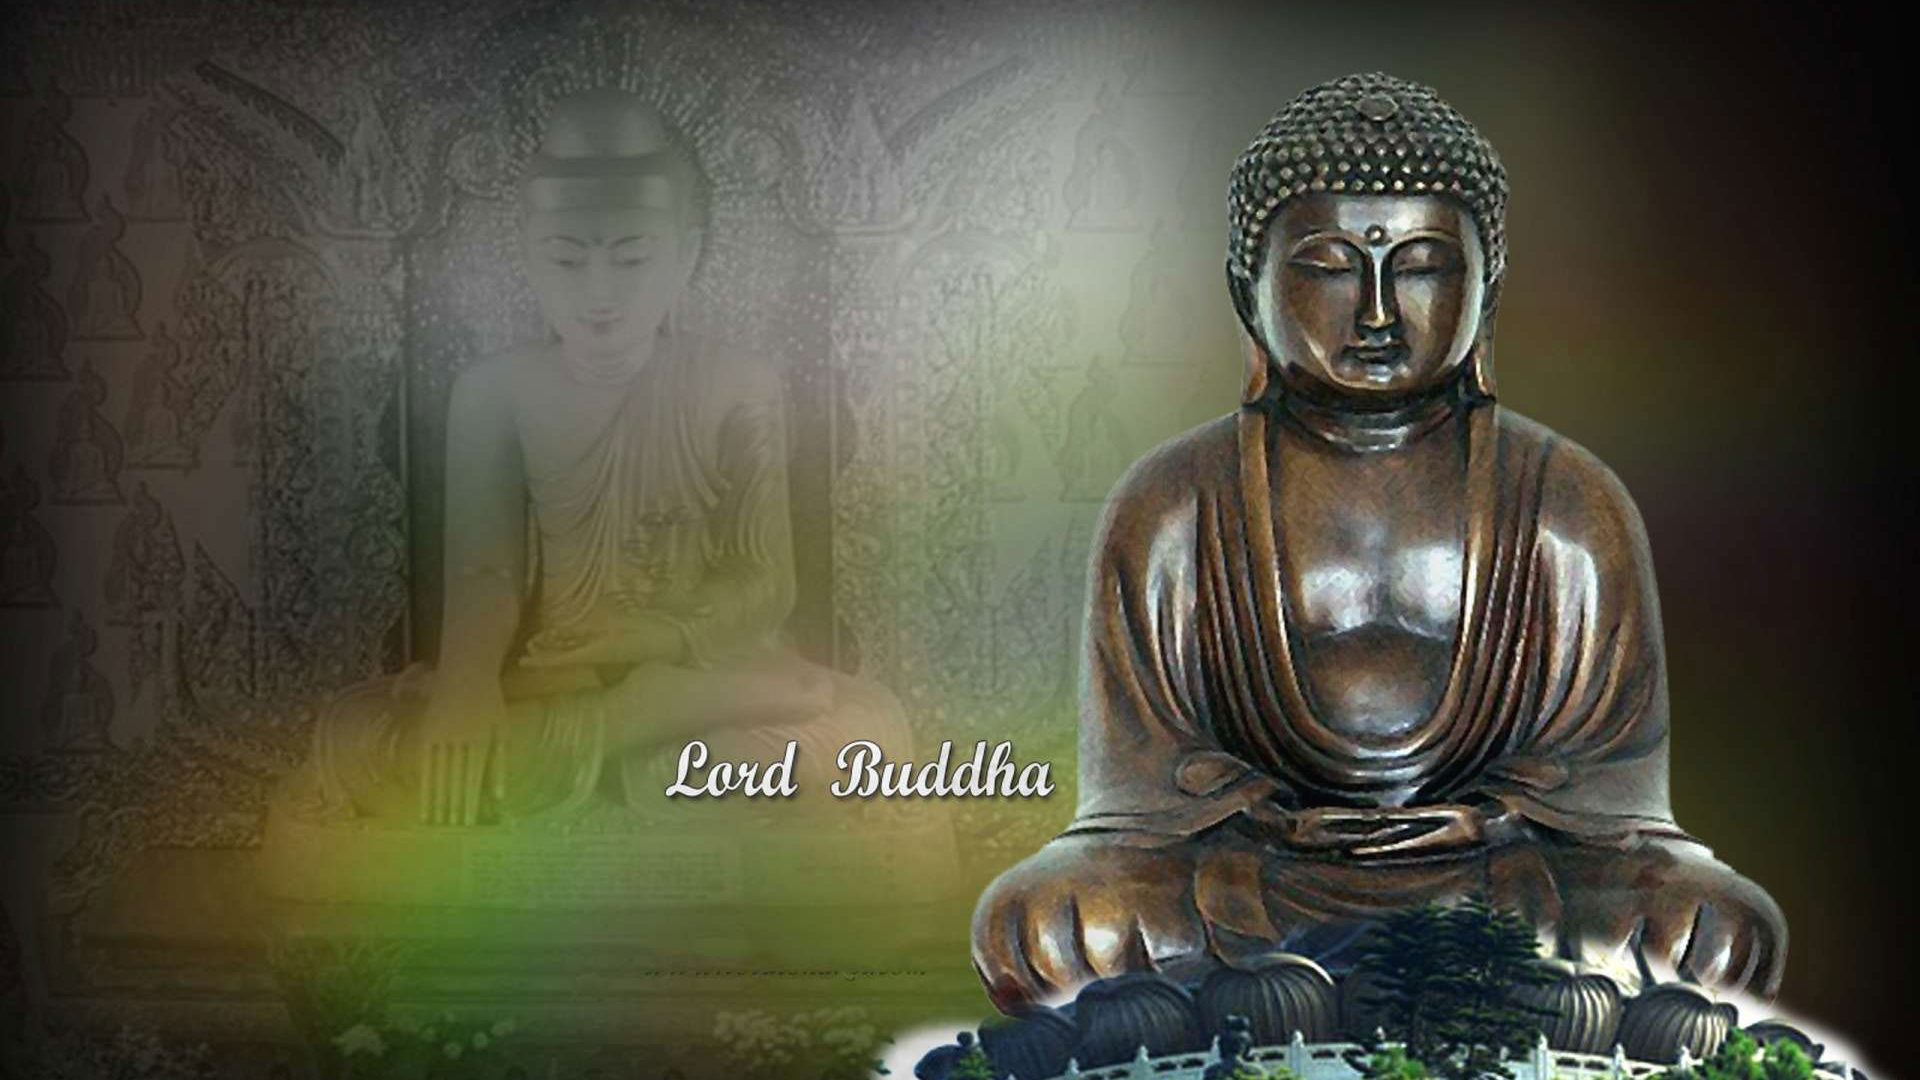 Gautam Buddha High Quality Wallpapers